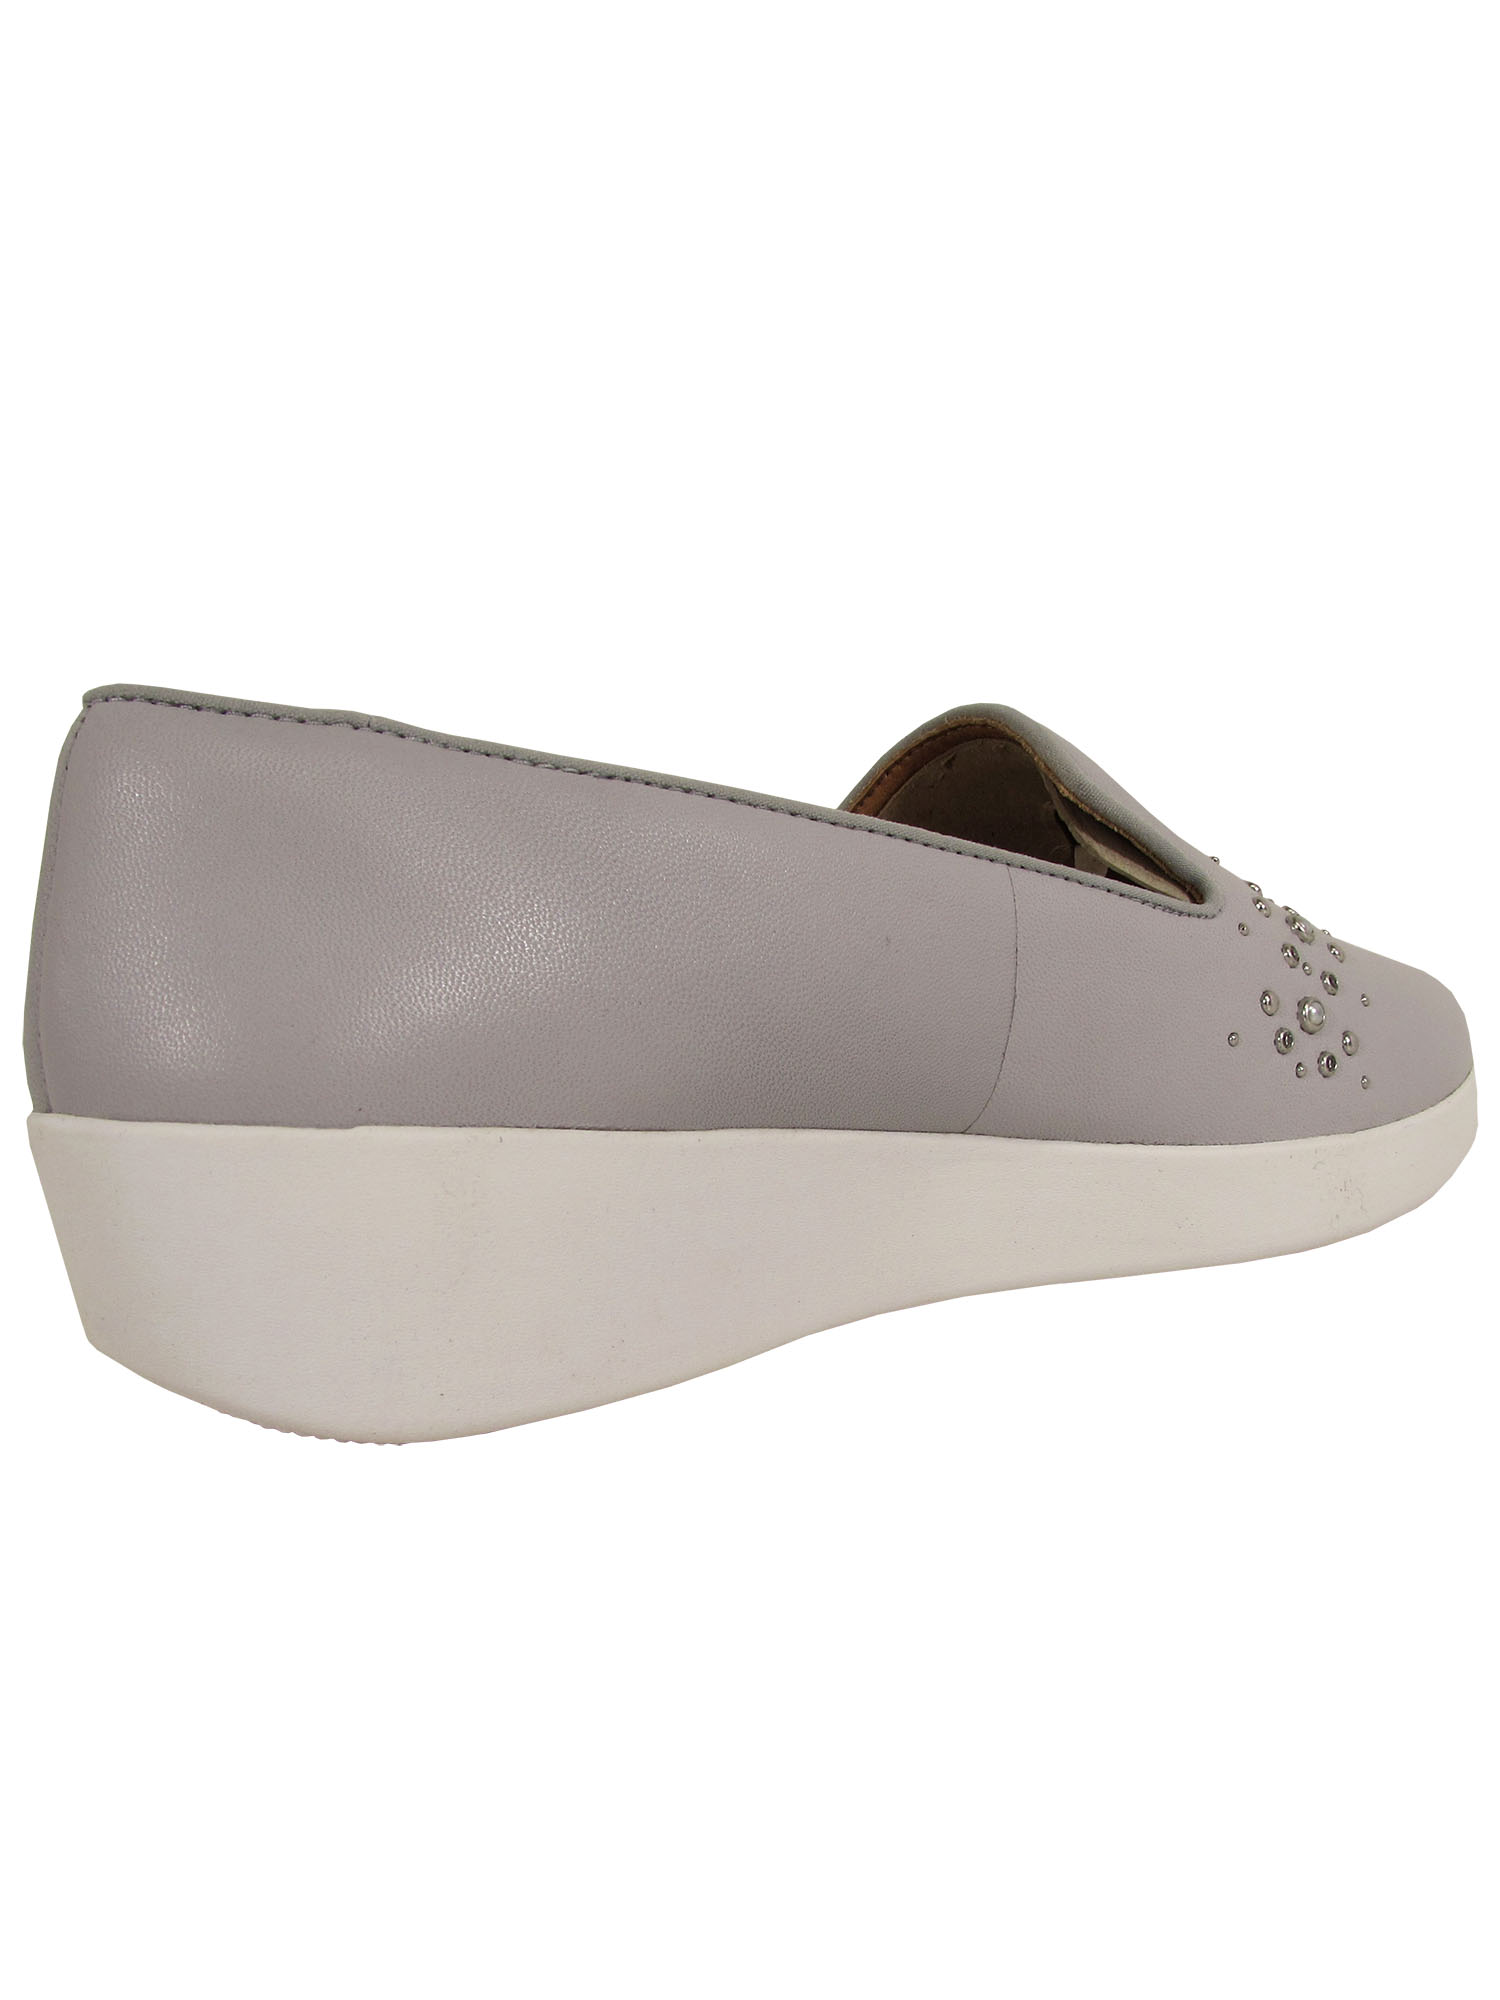 Fitflop-Womens-Audrey-Pearl-Stud-Smoking-Slipper-Shoes thumbnail 10